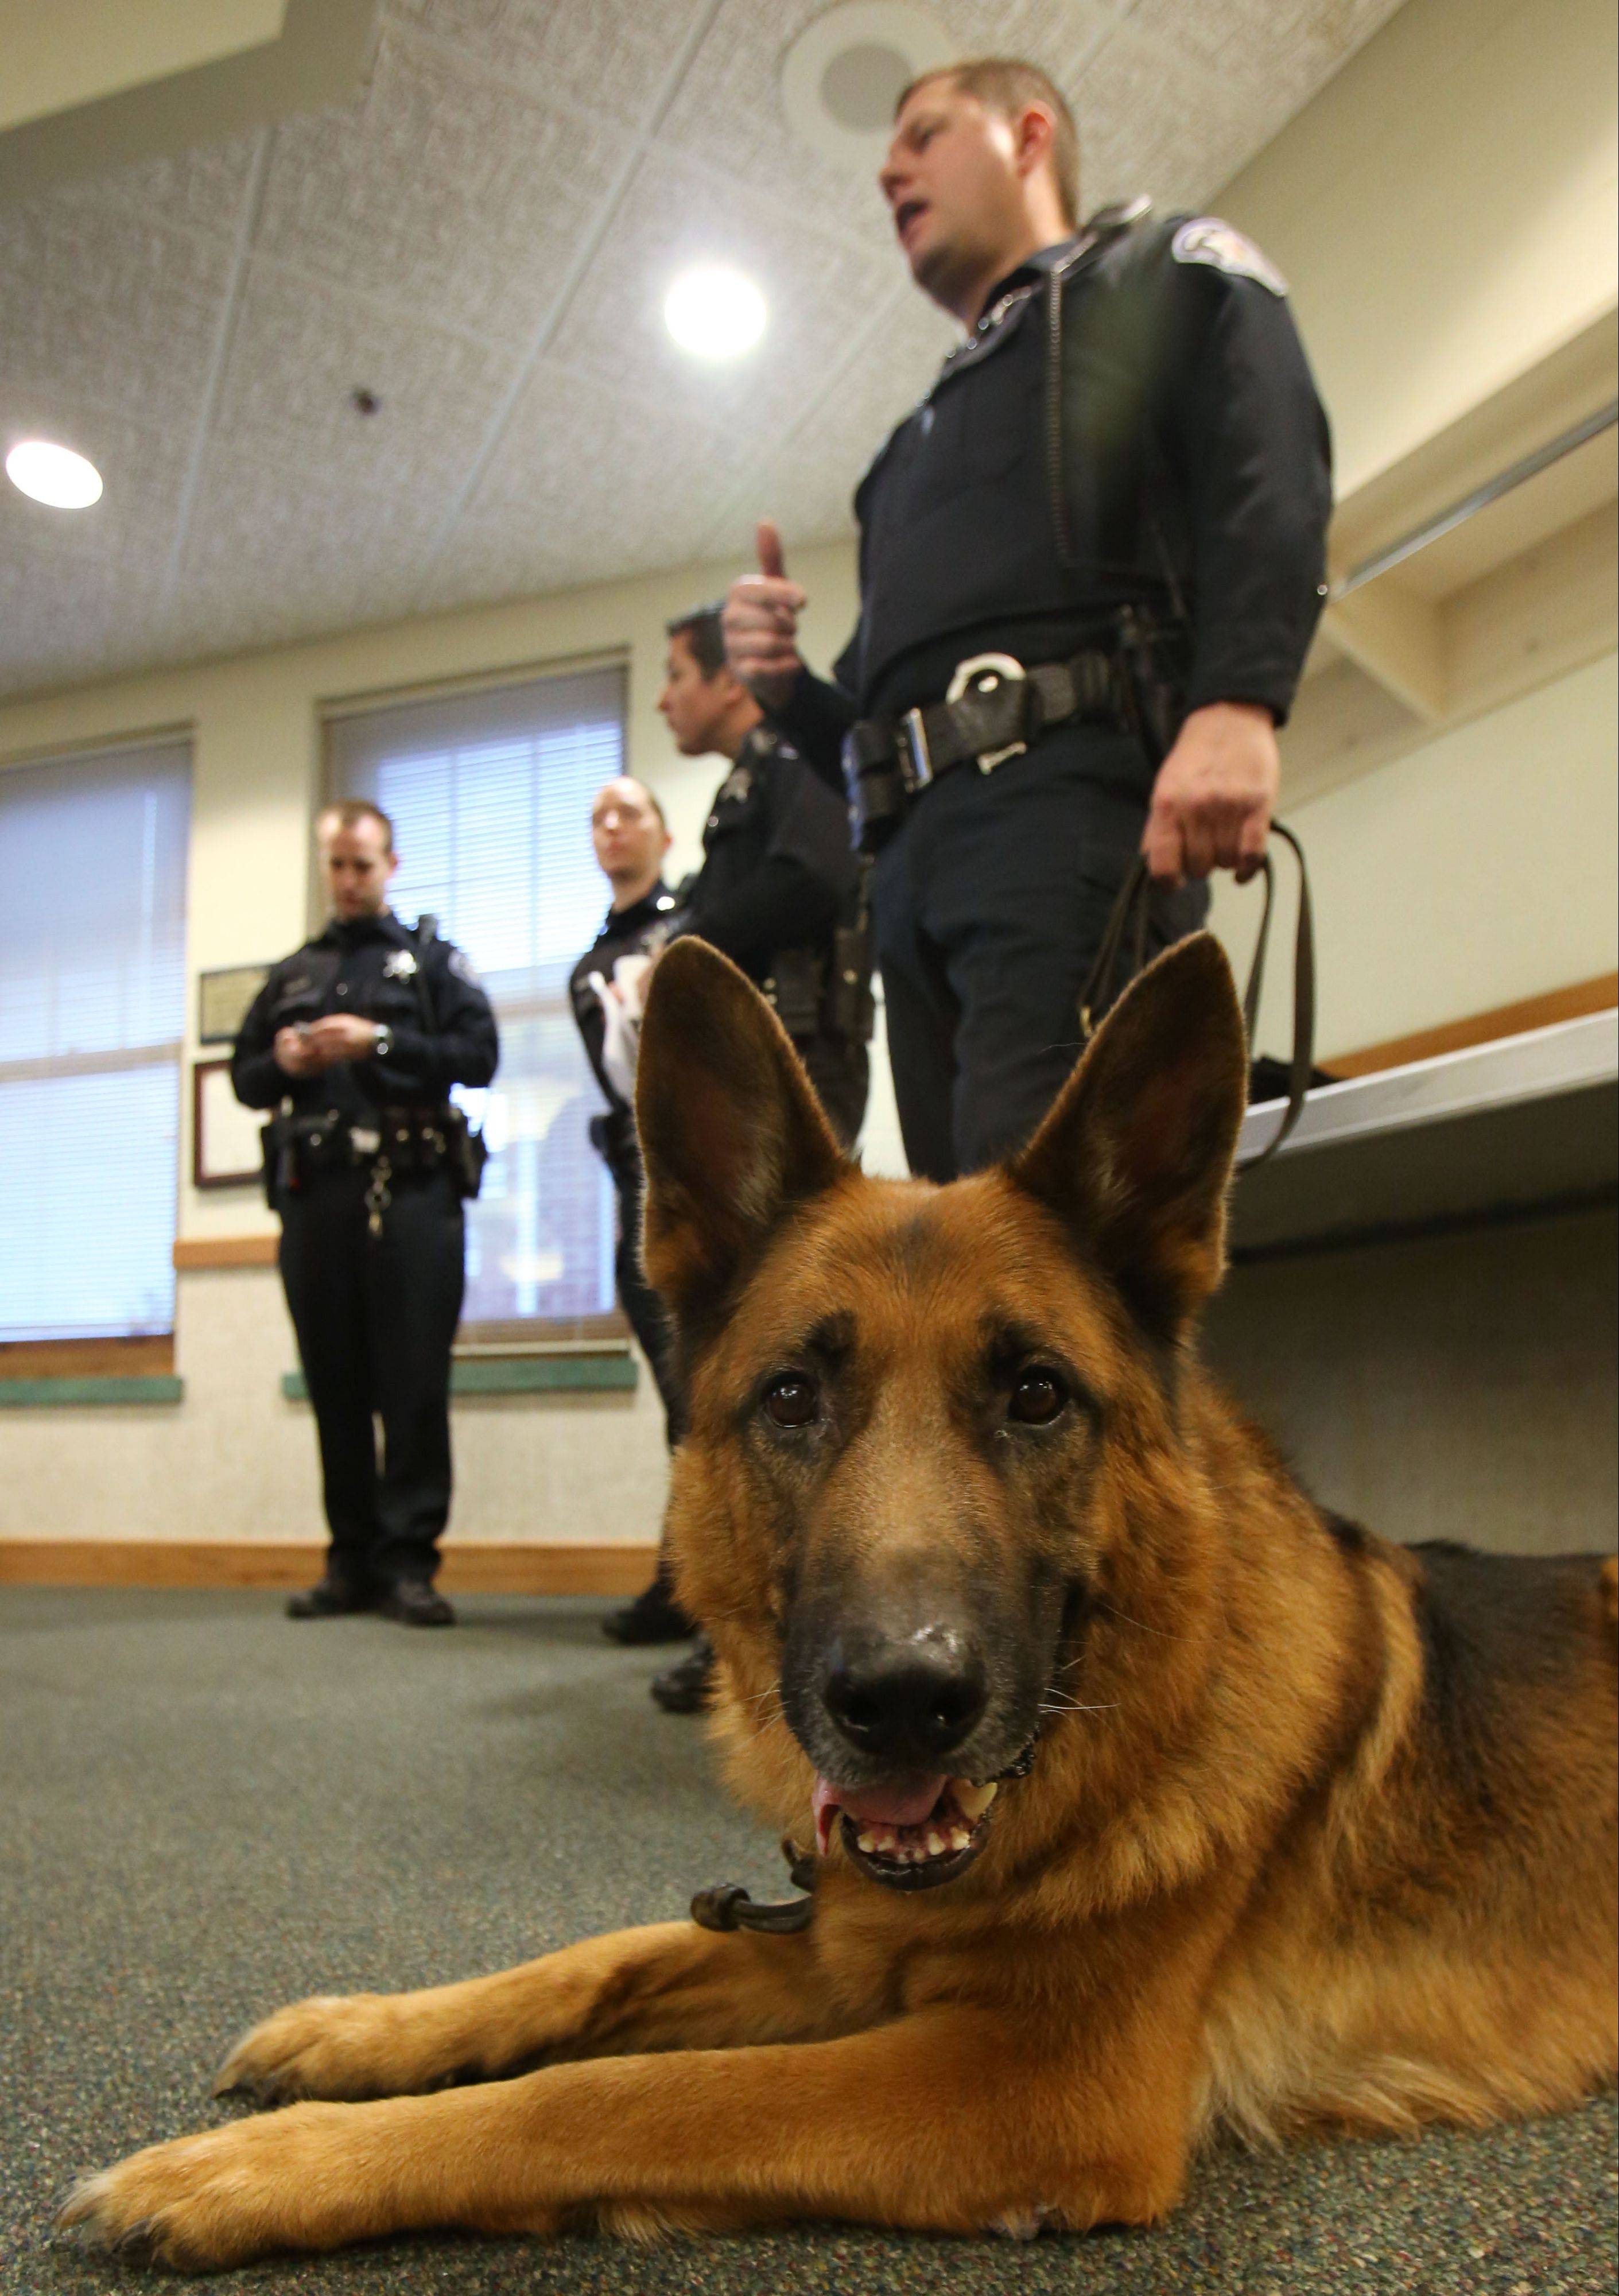 The Village of Round Lake Beach retired K-9 Gunnar from the police department Monday night at village hall. Gunnar has served the village for the last 7 1/2 years working with handler Officer Ken Rydz. Rydz now takes ownership of Gunnar.